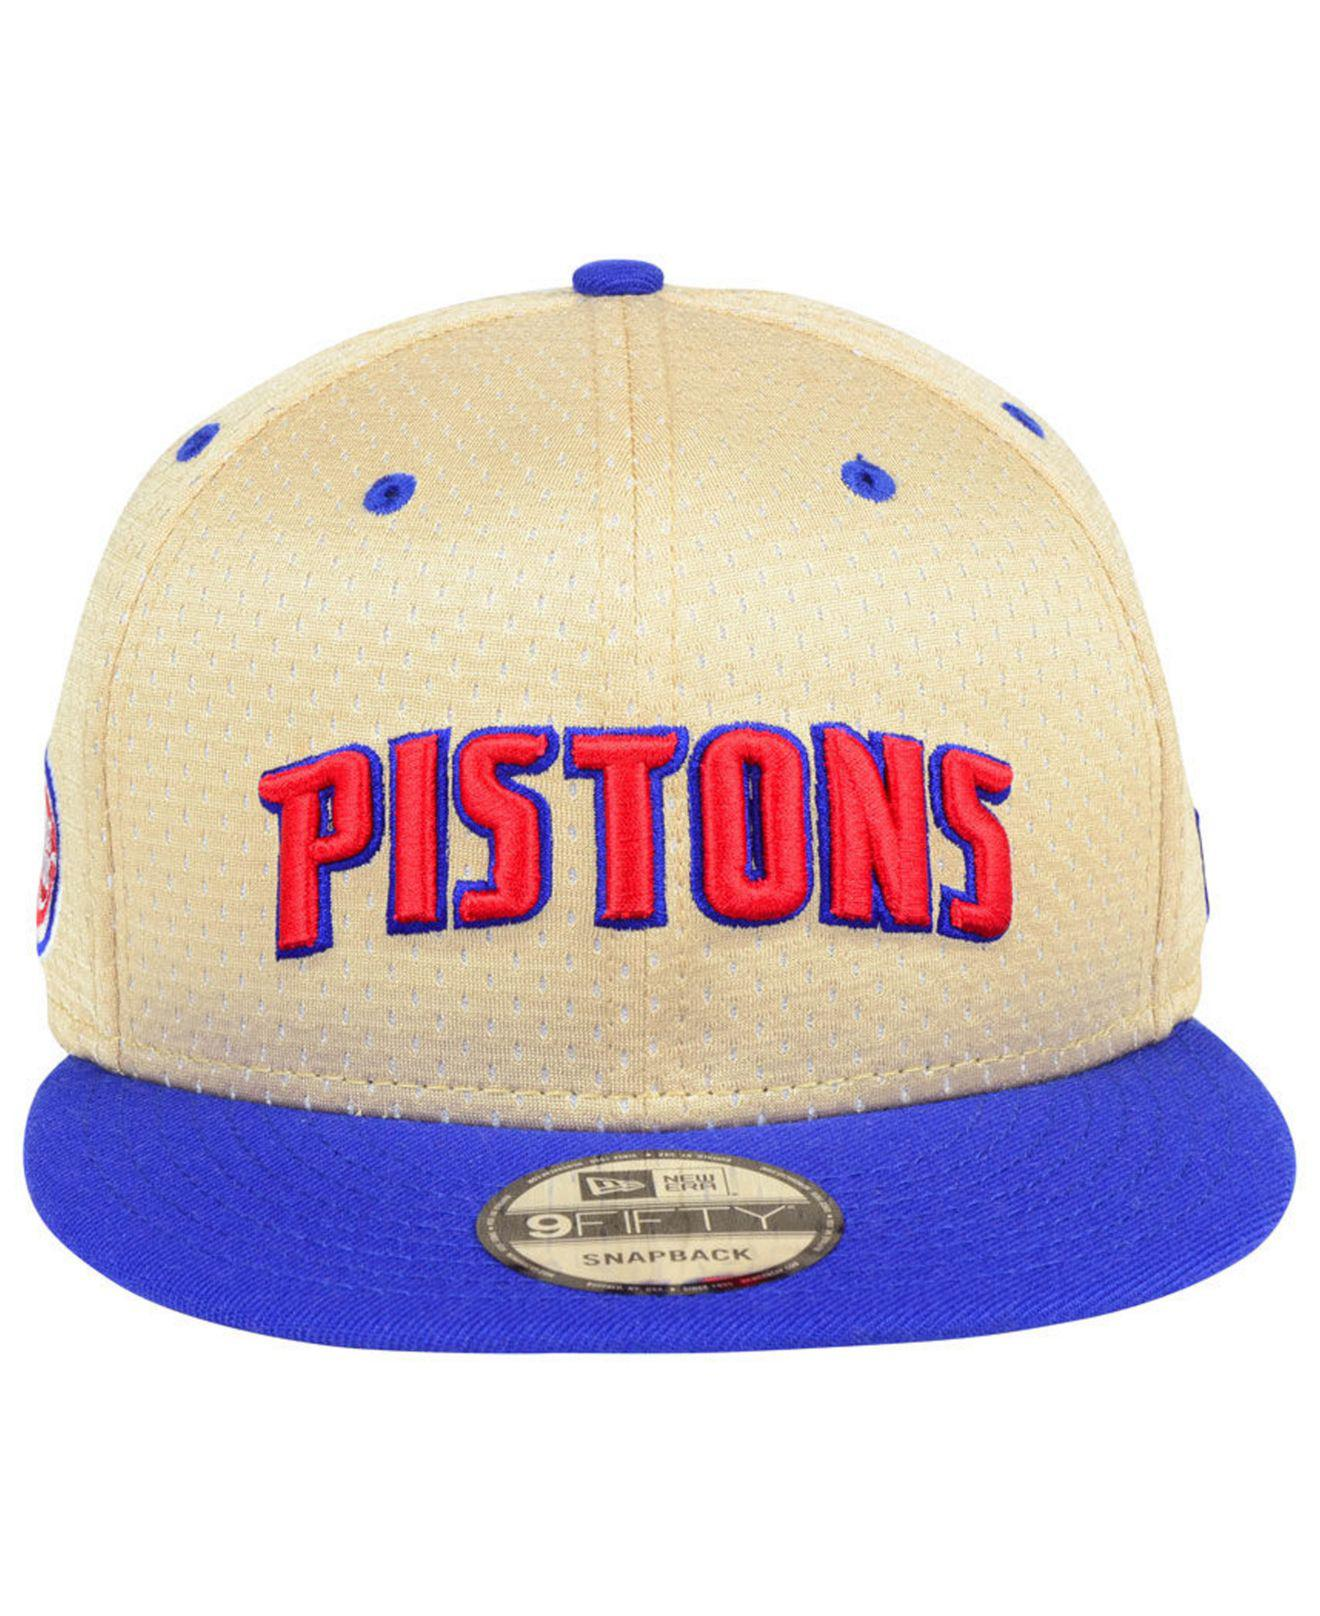 official photos c7785 bb70e ... norway lyst ktz detroit pistons champagne 9fifty snapback cap in blue  for men 7847c 30630